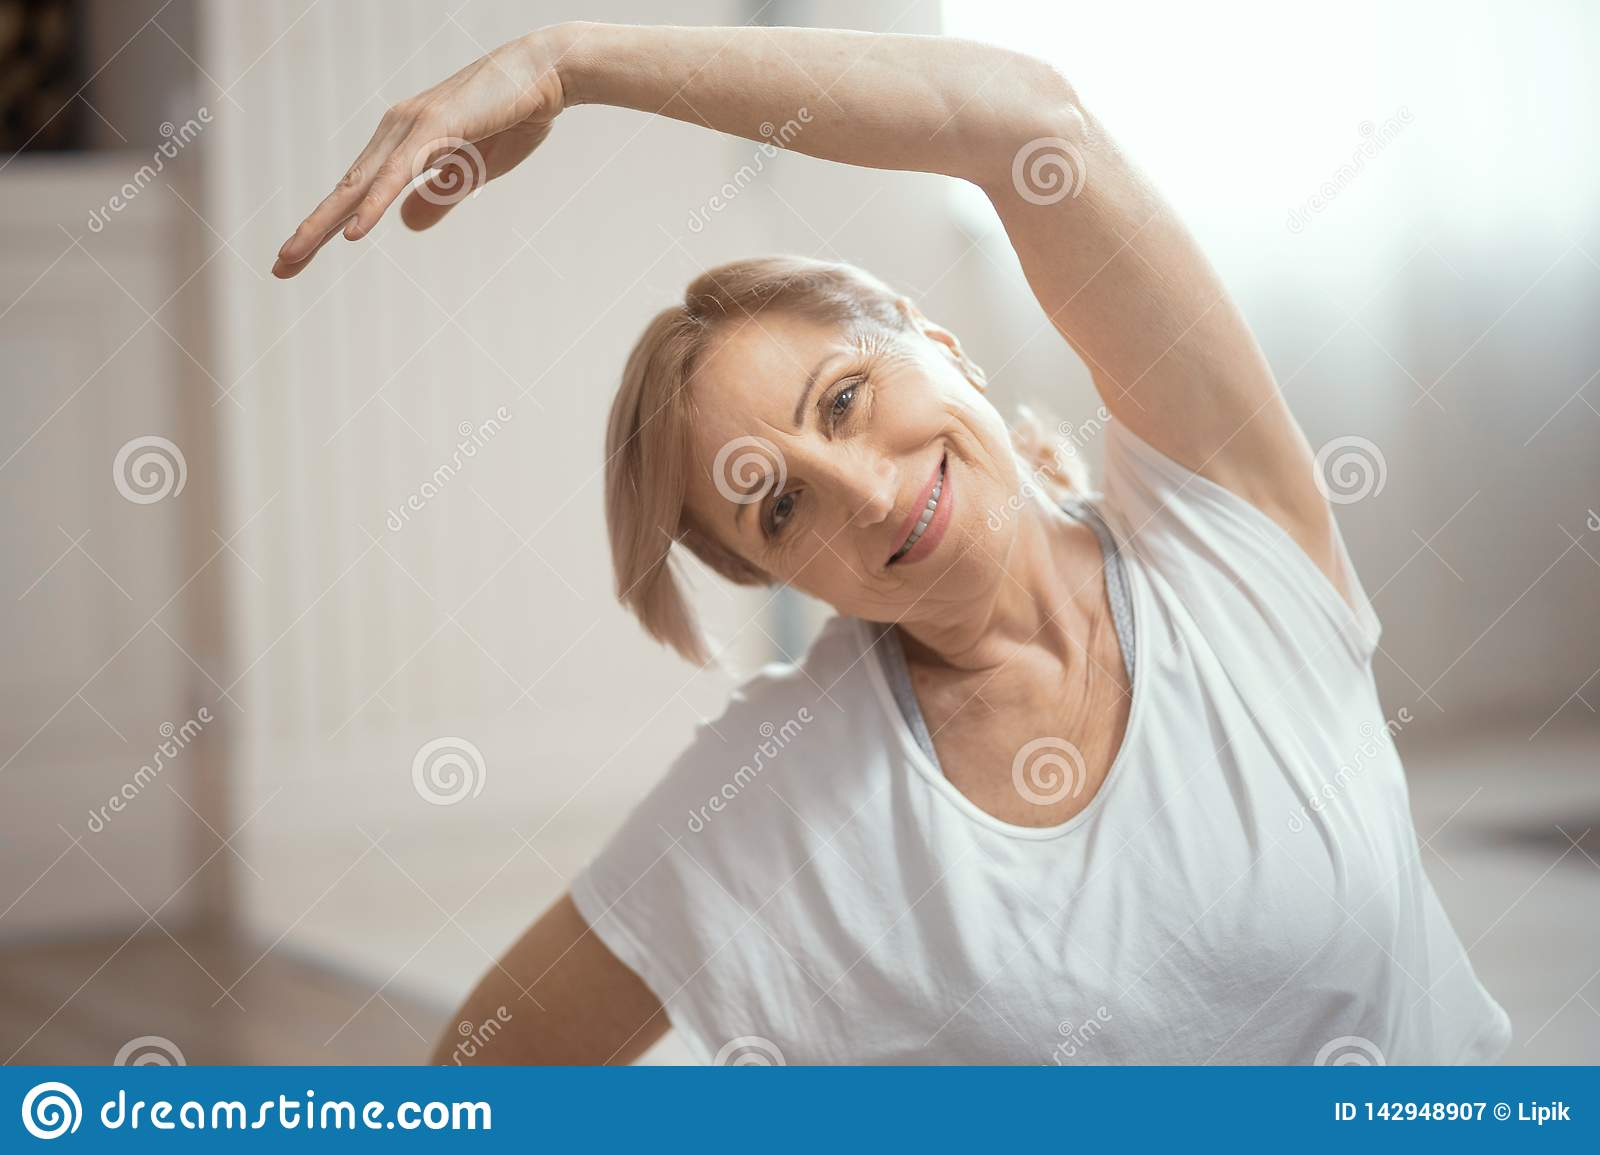 Yoga Classes At Home Beautiful Women Over 50 Years Stock Image Image Of Persistence European 142948907